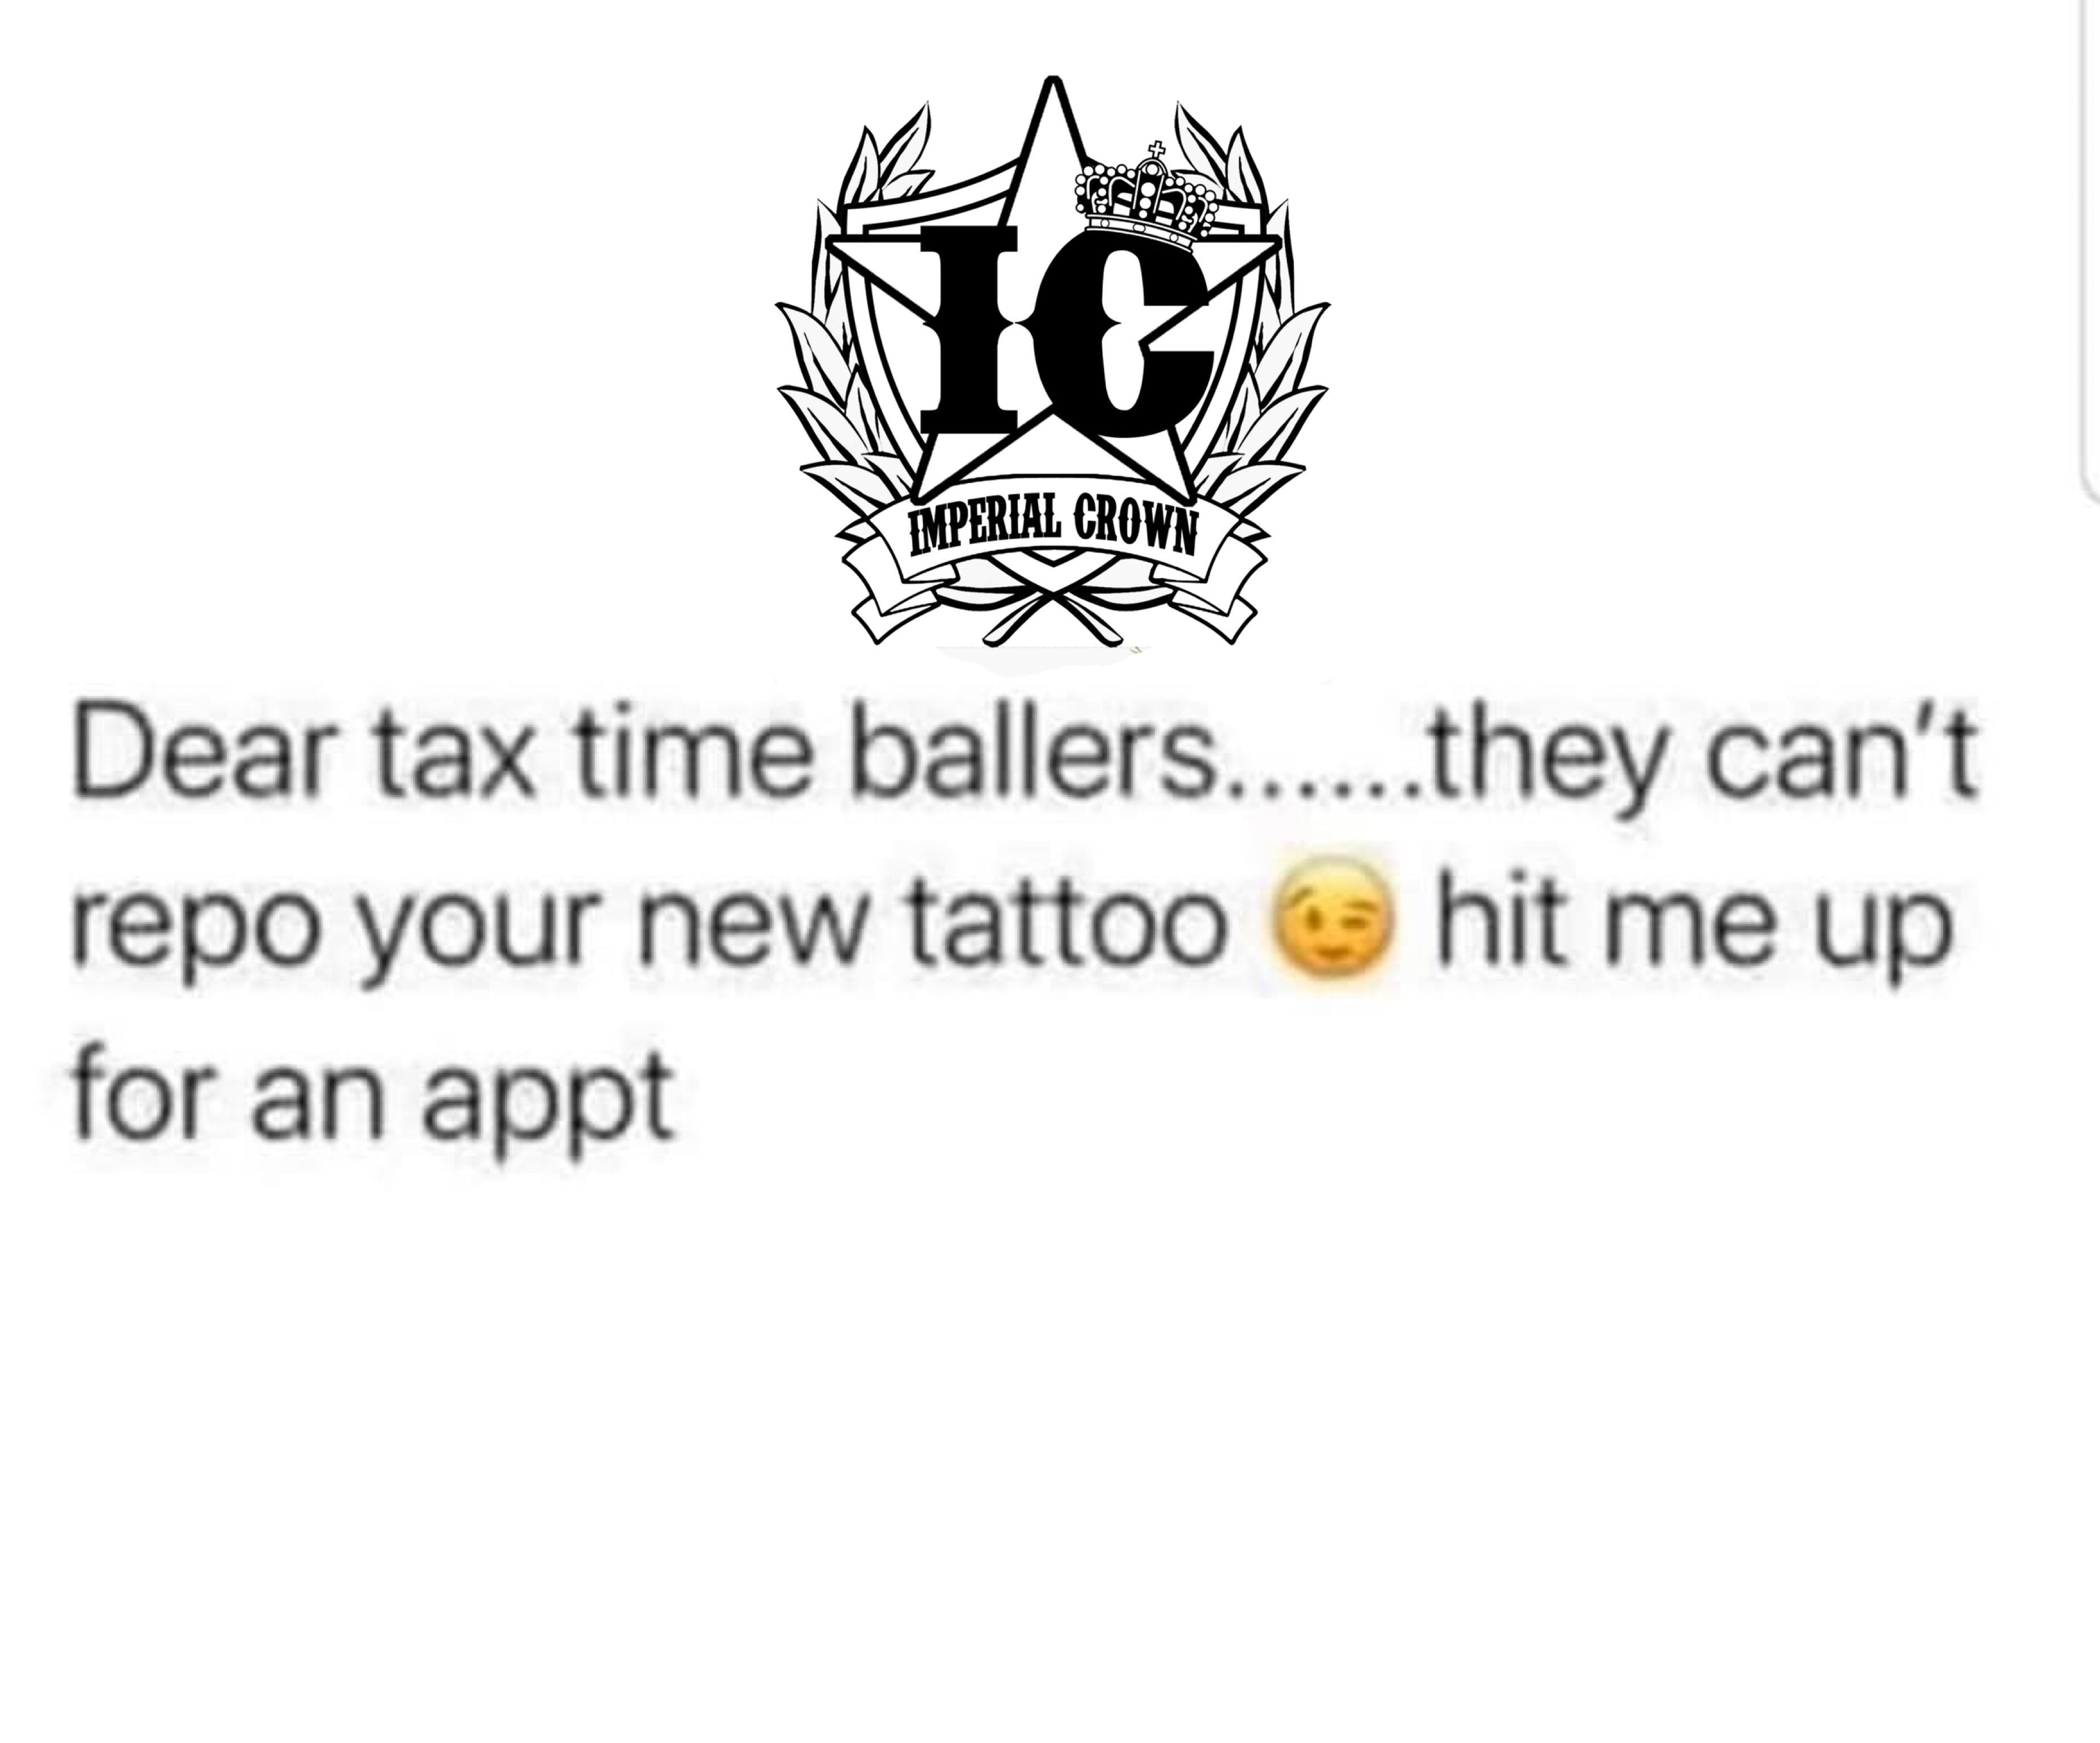 Dear tax time ballers they can't repo your new tattoo hit me up for an appt